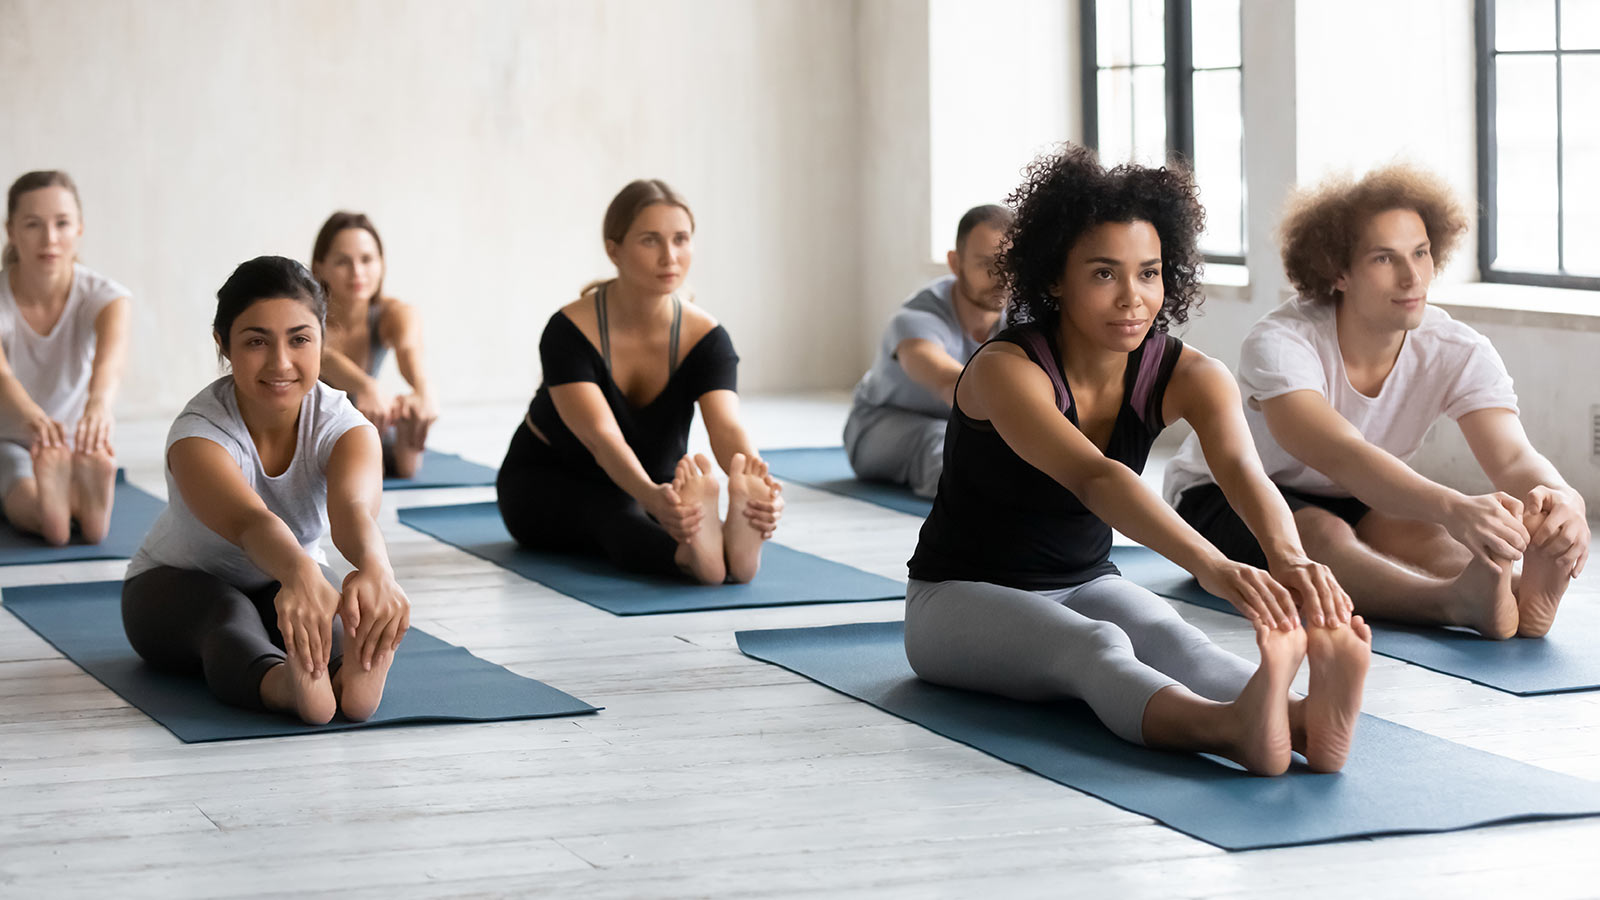 Diverse people practicing yoga